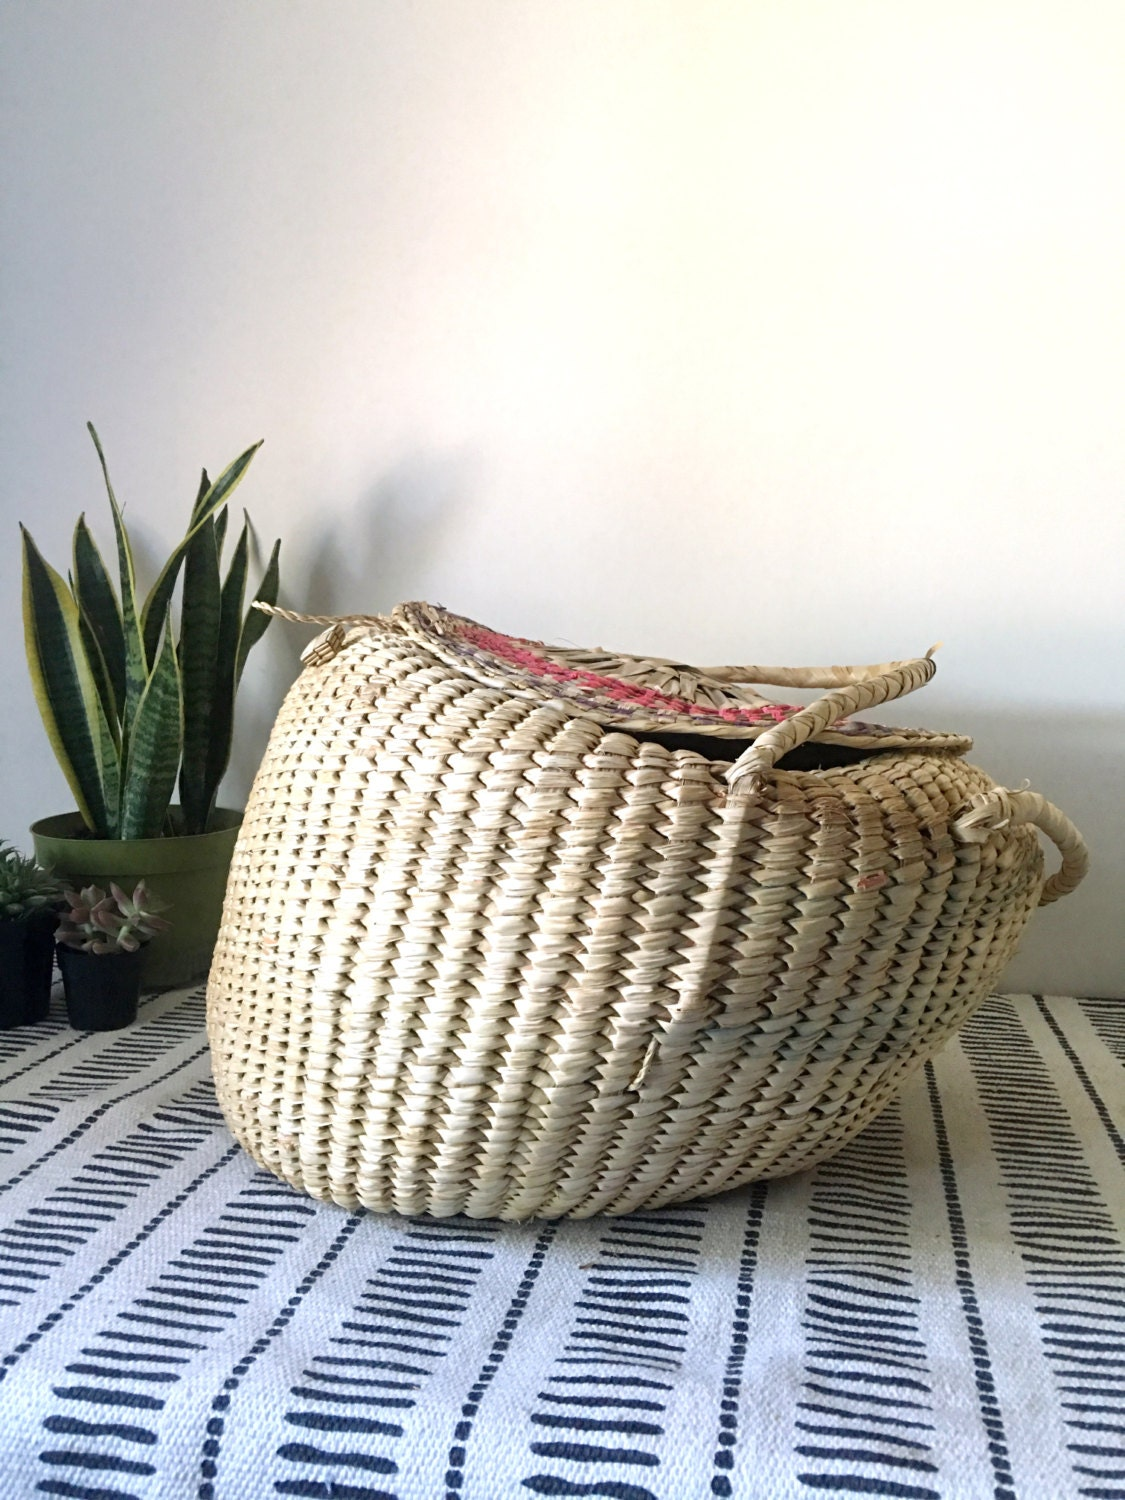 Extra Large Vintage Woven Straw Snake Charmer Basket with